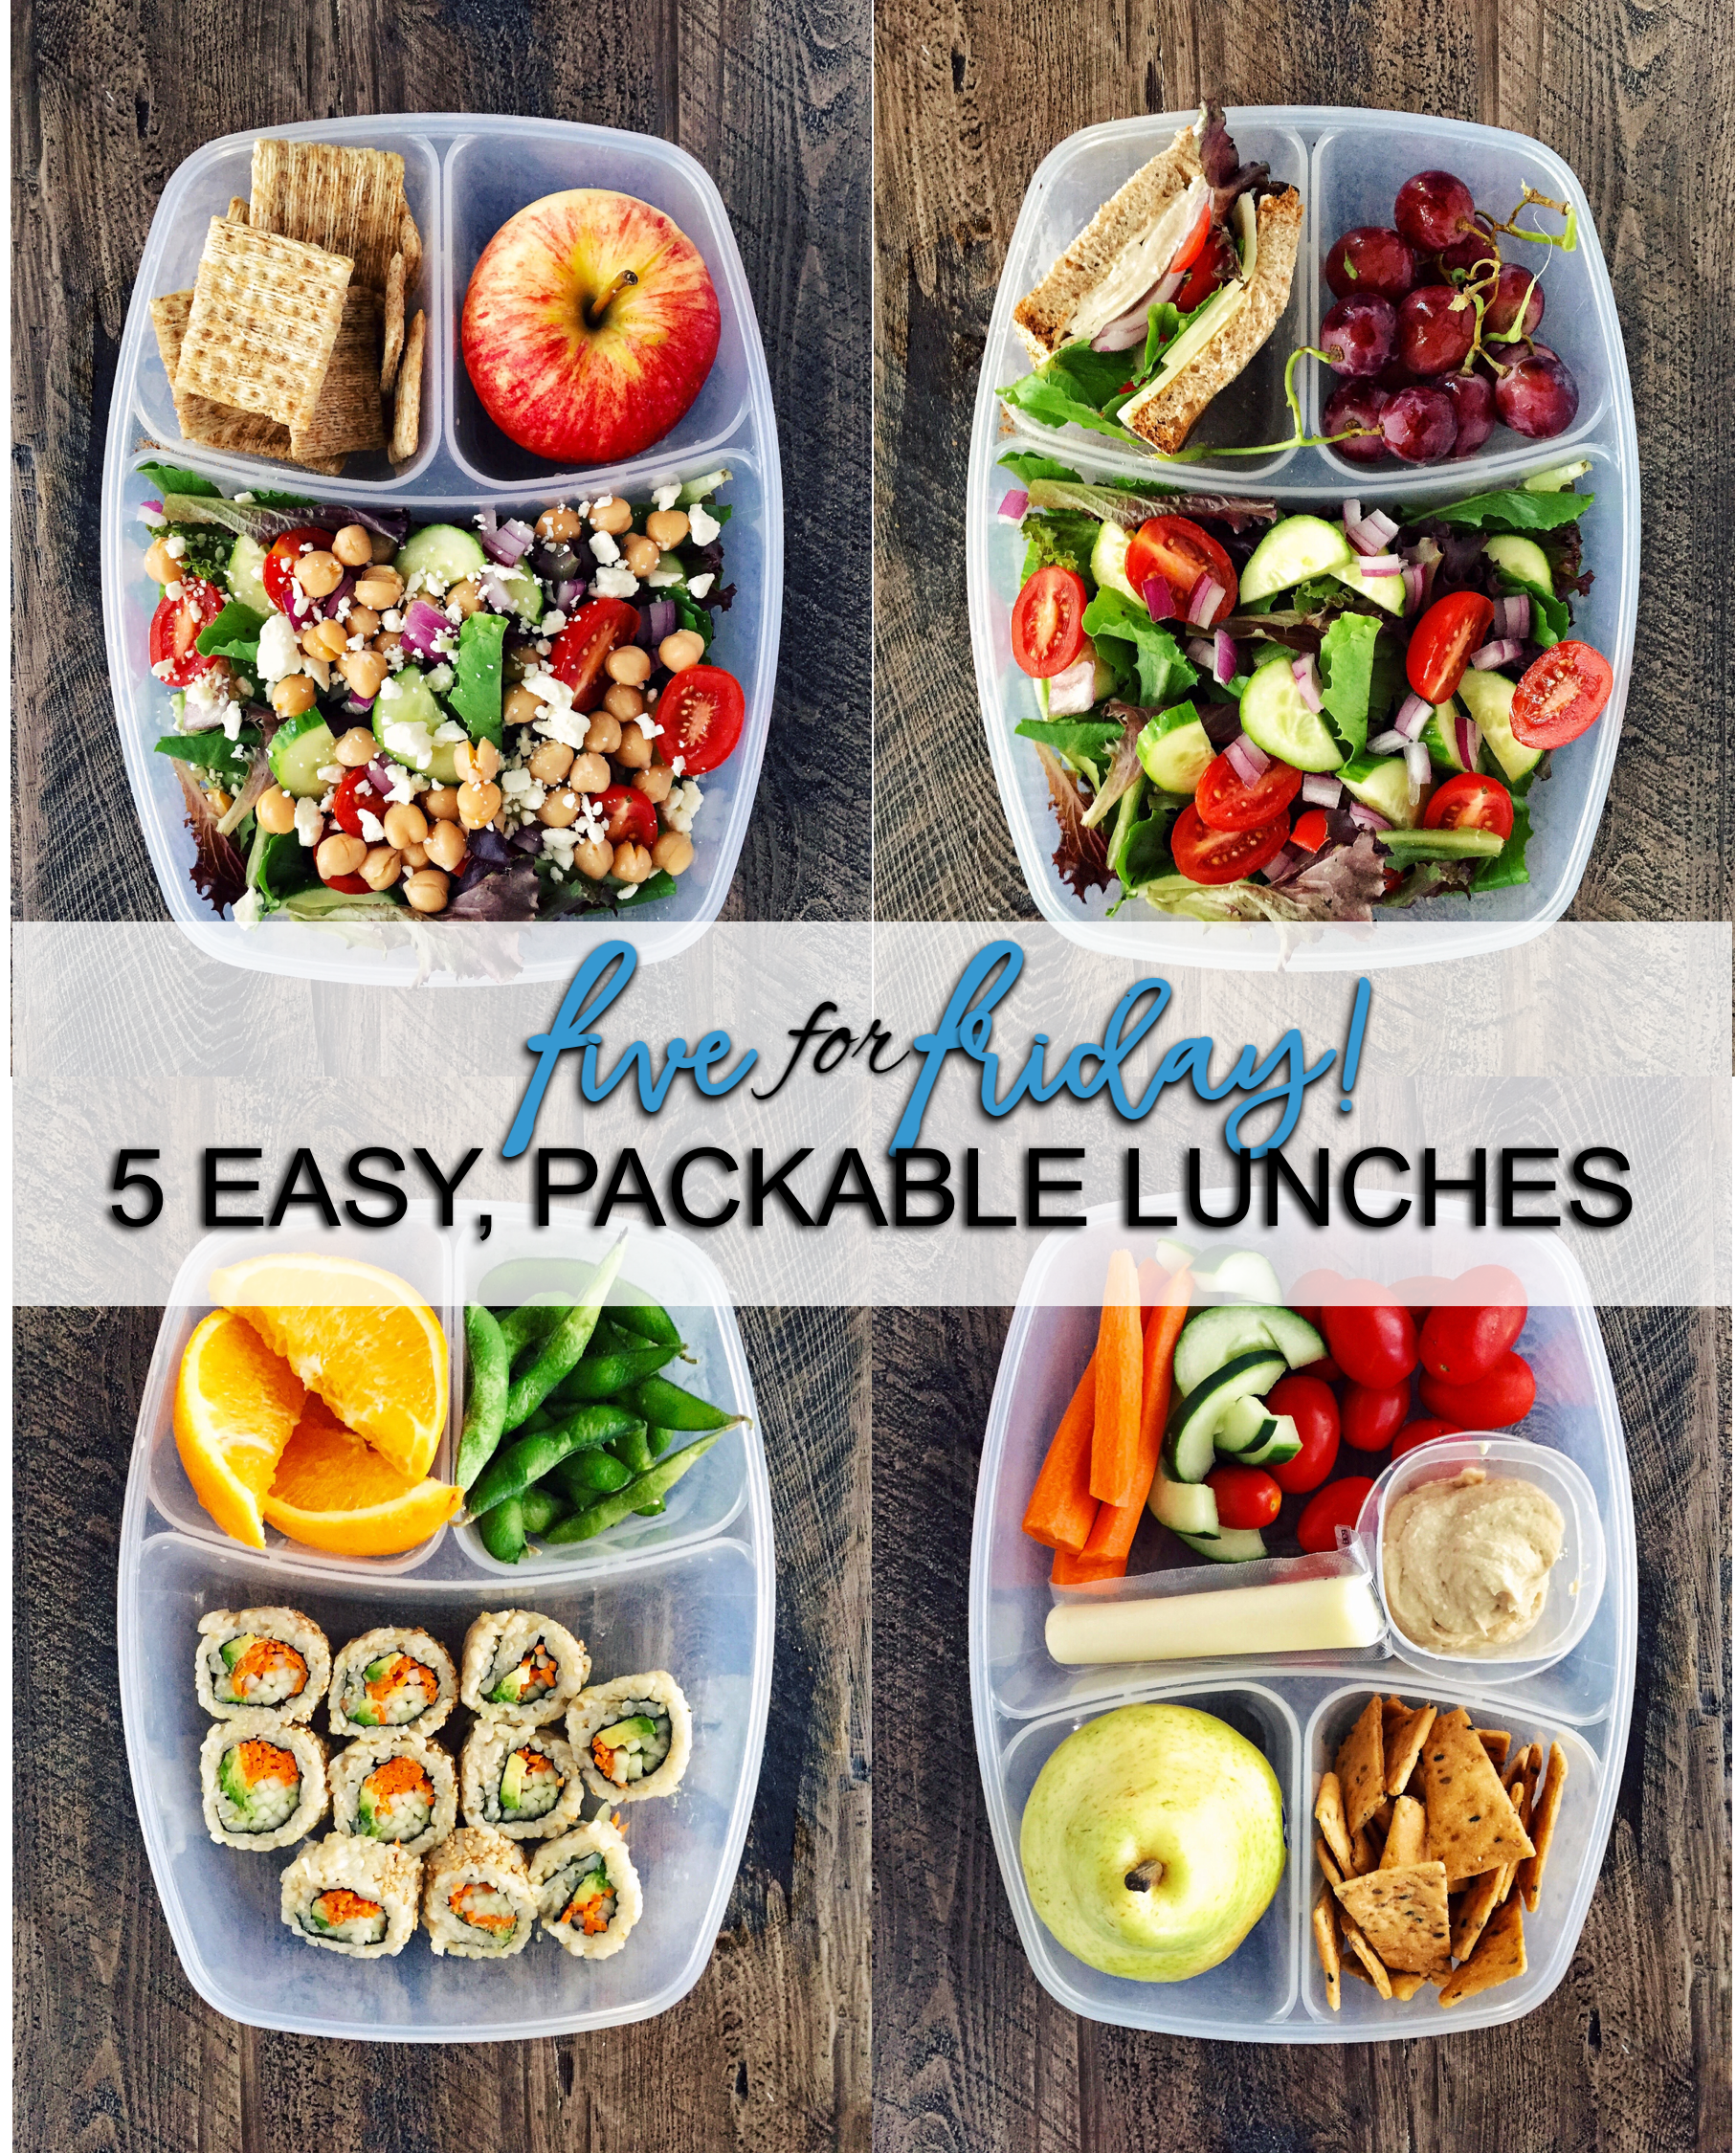 Paleo lunches can be delicious, filling, healthy, and easy to prepare. Whether you're packing your lunch for work, school, or simply because you'll be out of the house all day these 20 Packable On-the-Go Paleo Lunches will have your needs covered. Many are Whole30 friendly in addition to Paleo or easy to adapt to be Whole30 compliant.